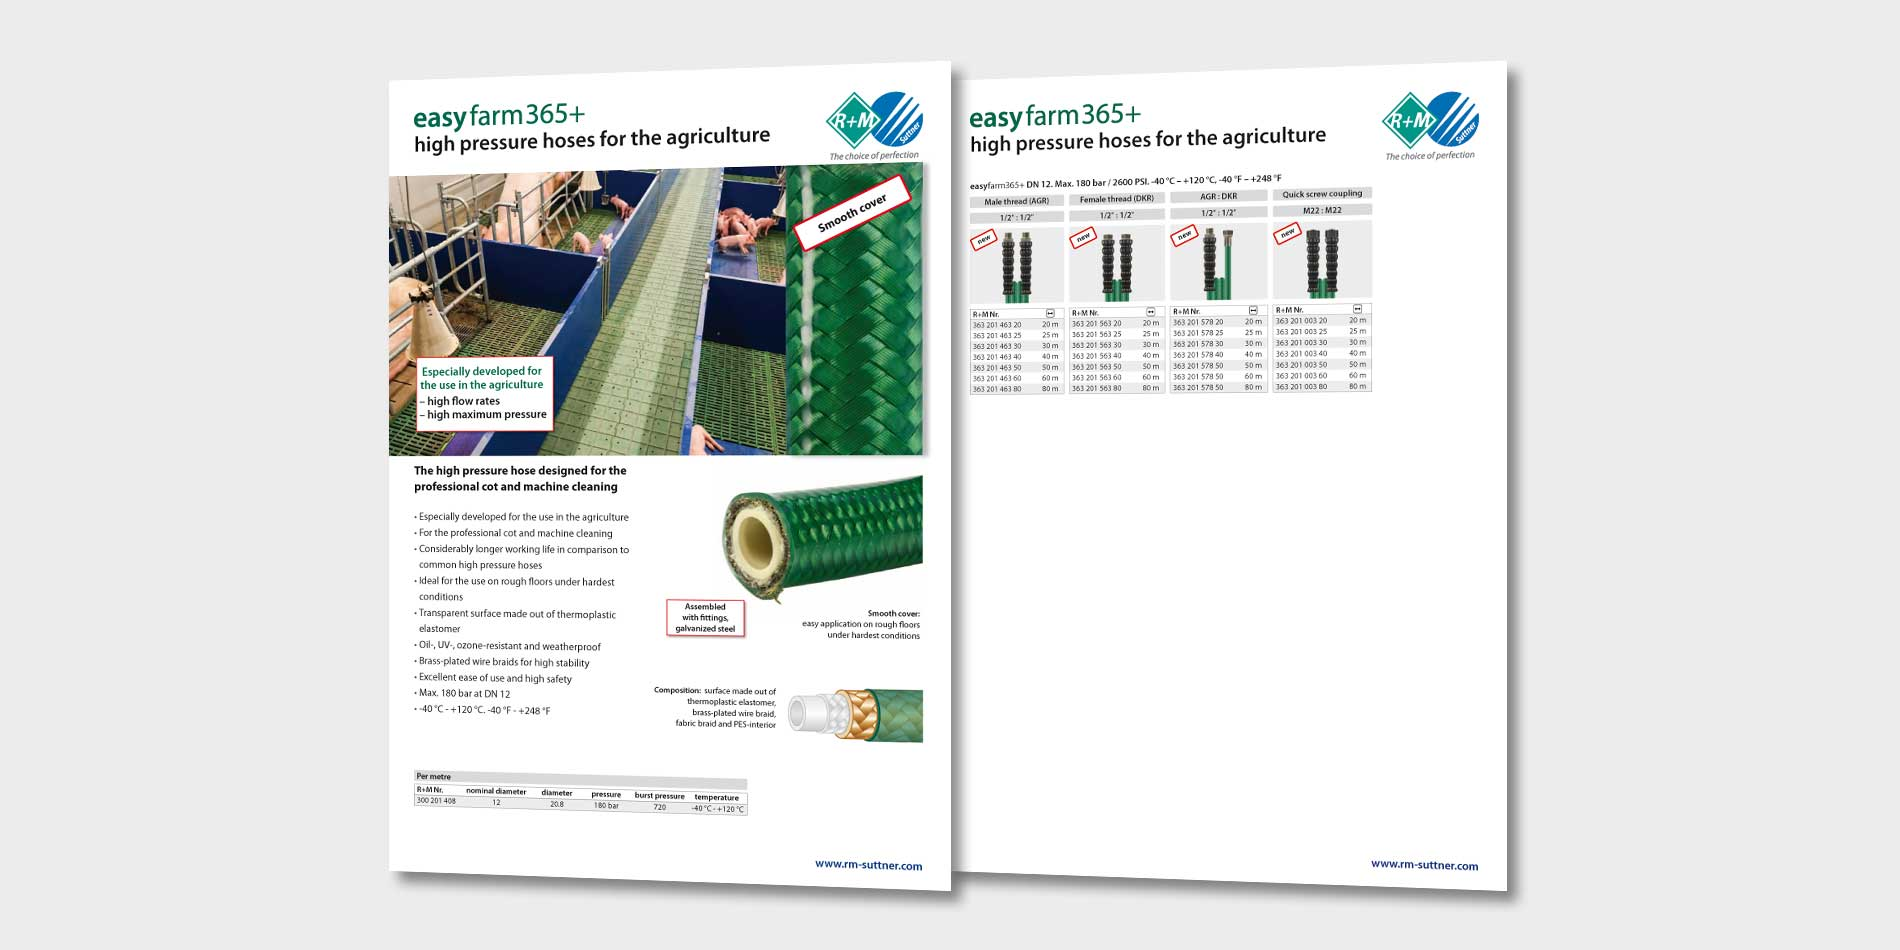 The high pressure hose designed for the professional cot and machine cleaning